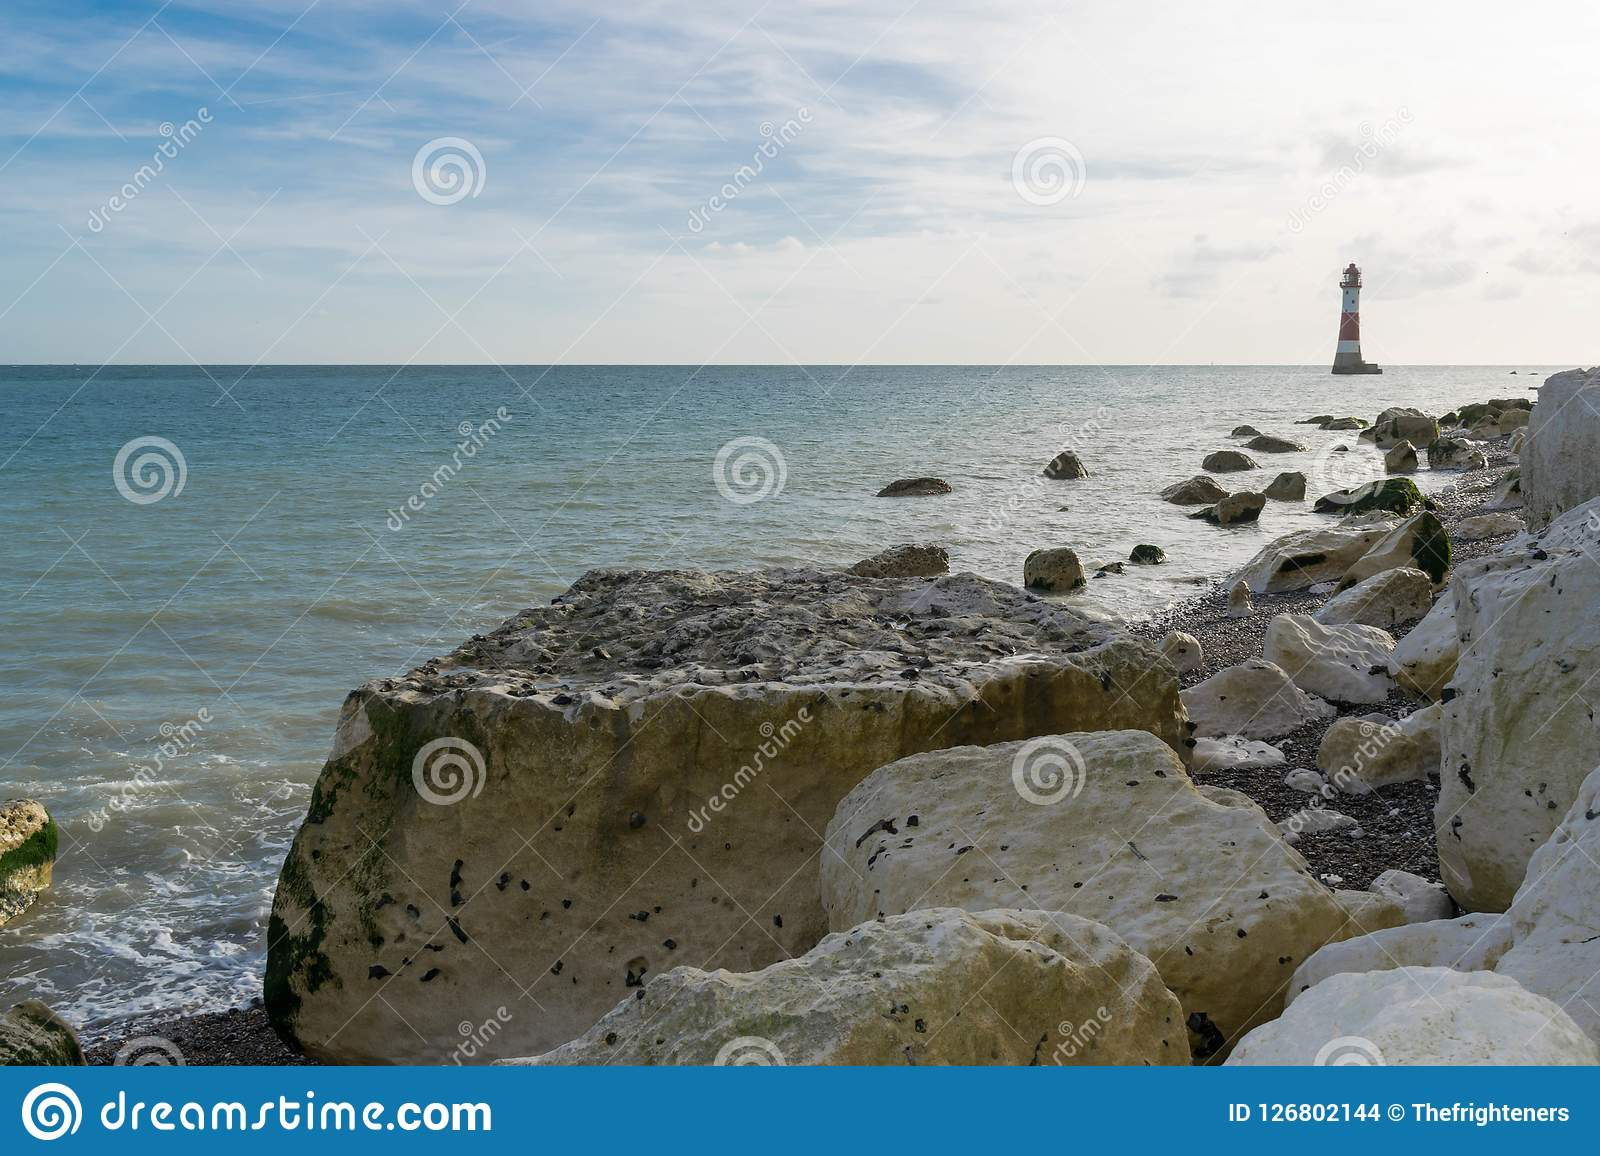 Sea Tide Off And Leaving The Rock Out Stock Photo Image Of Near